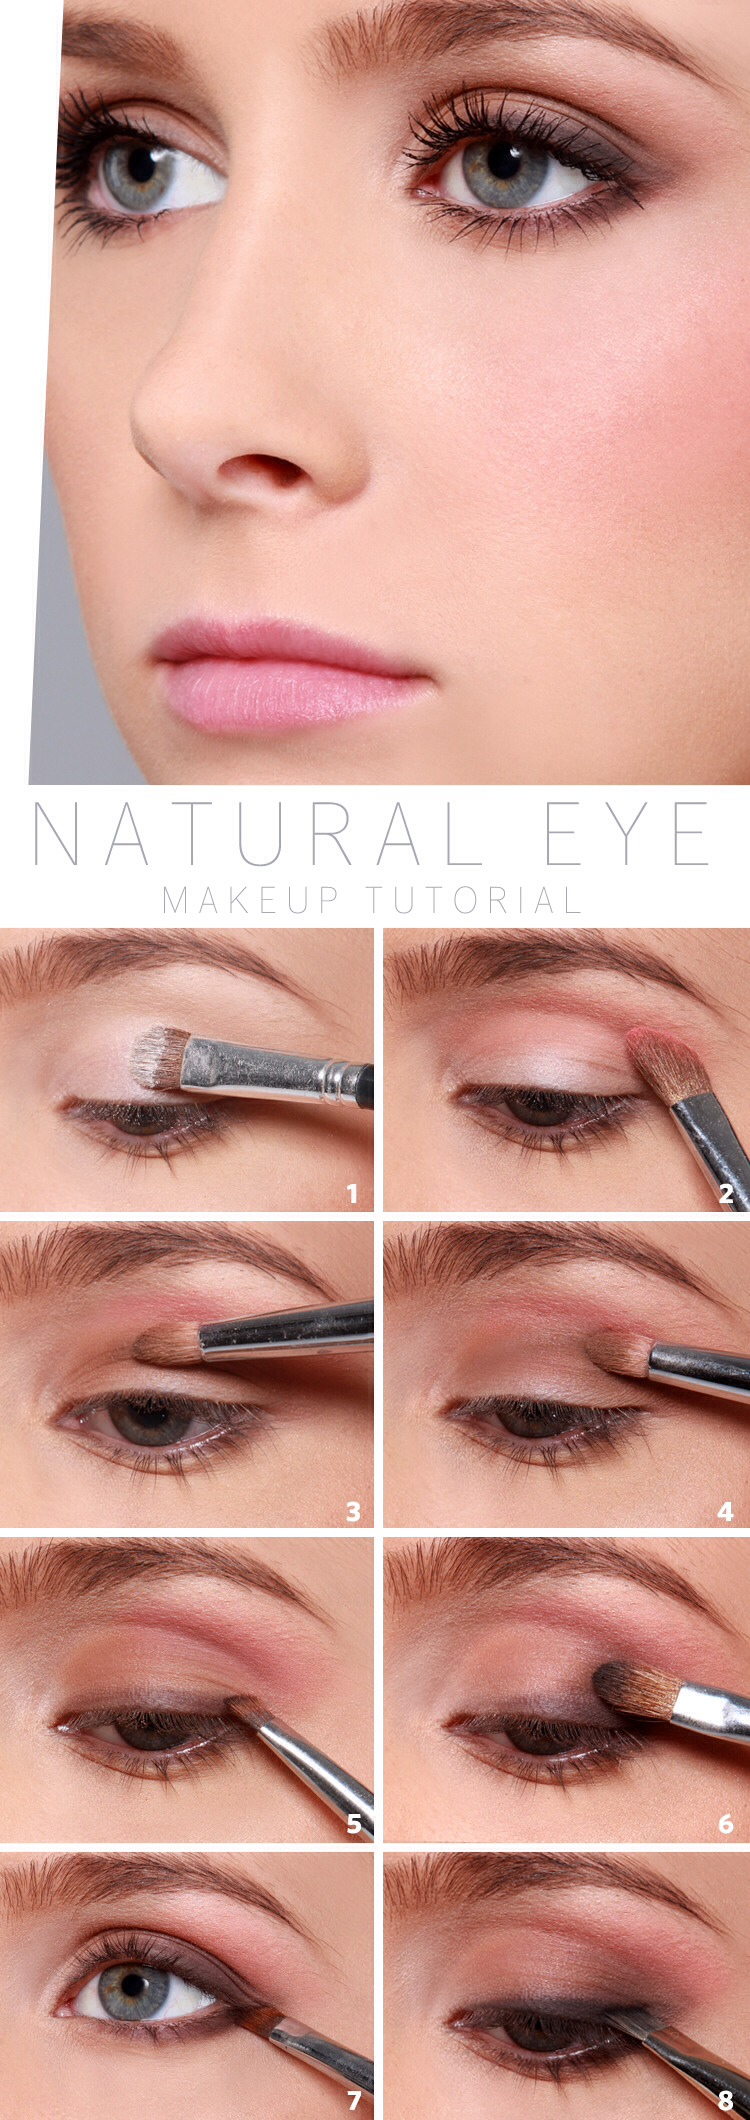 Natural, everyday look. Really subtle and romantic.